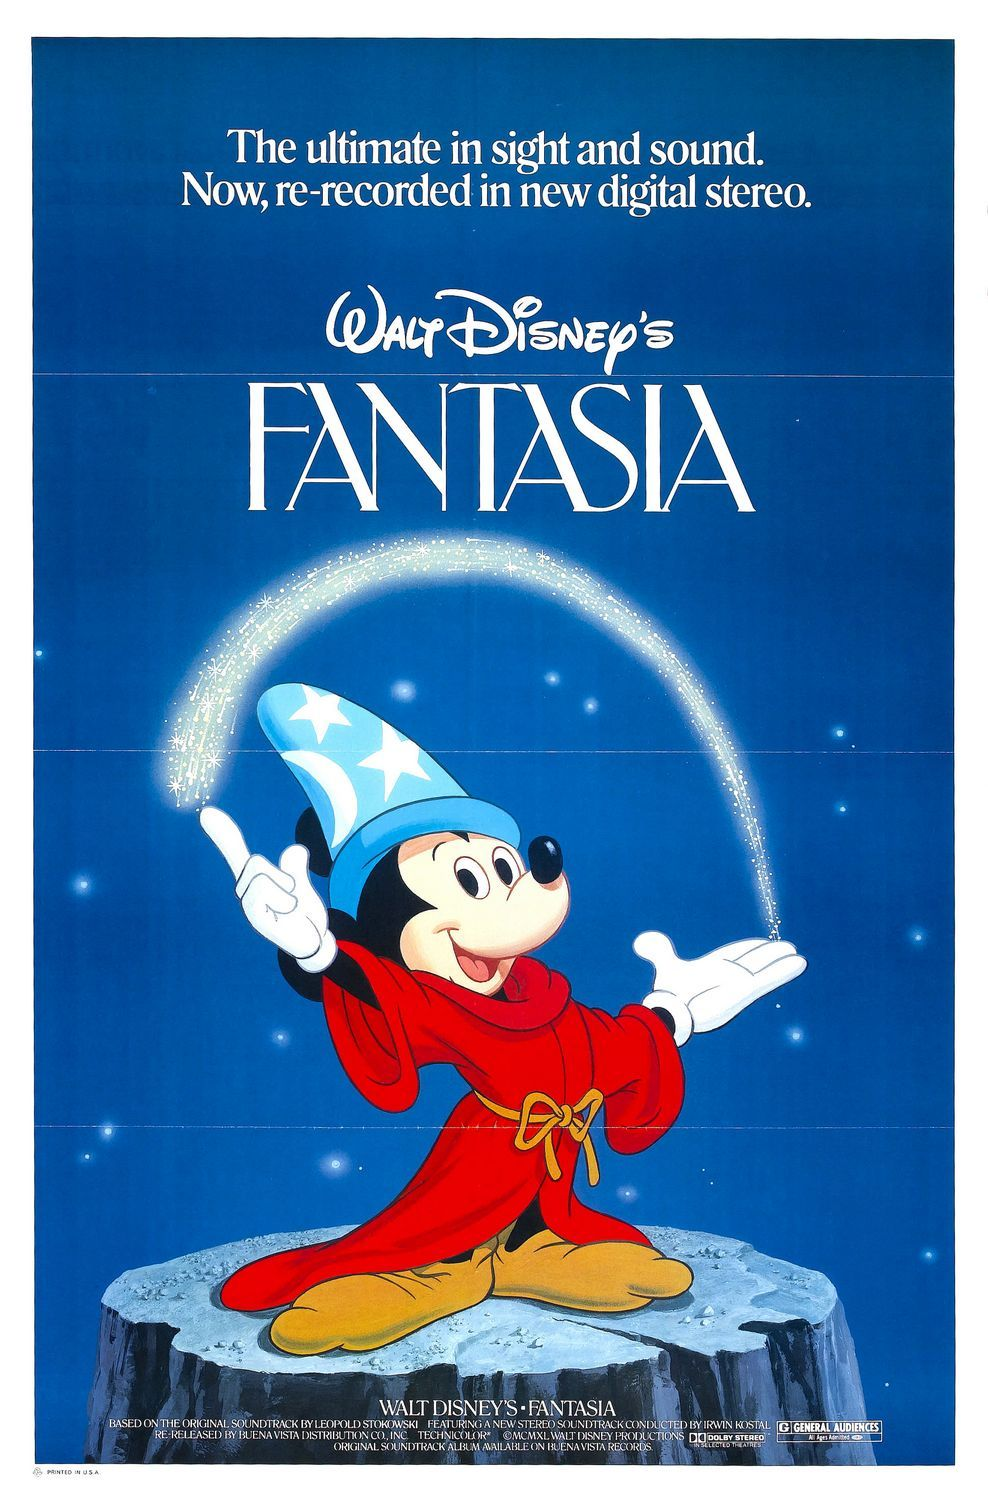 Fantasia is a 1940 American animated film produced by Walt